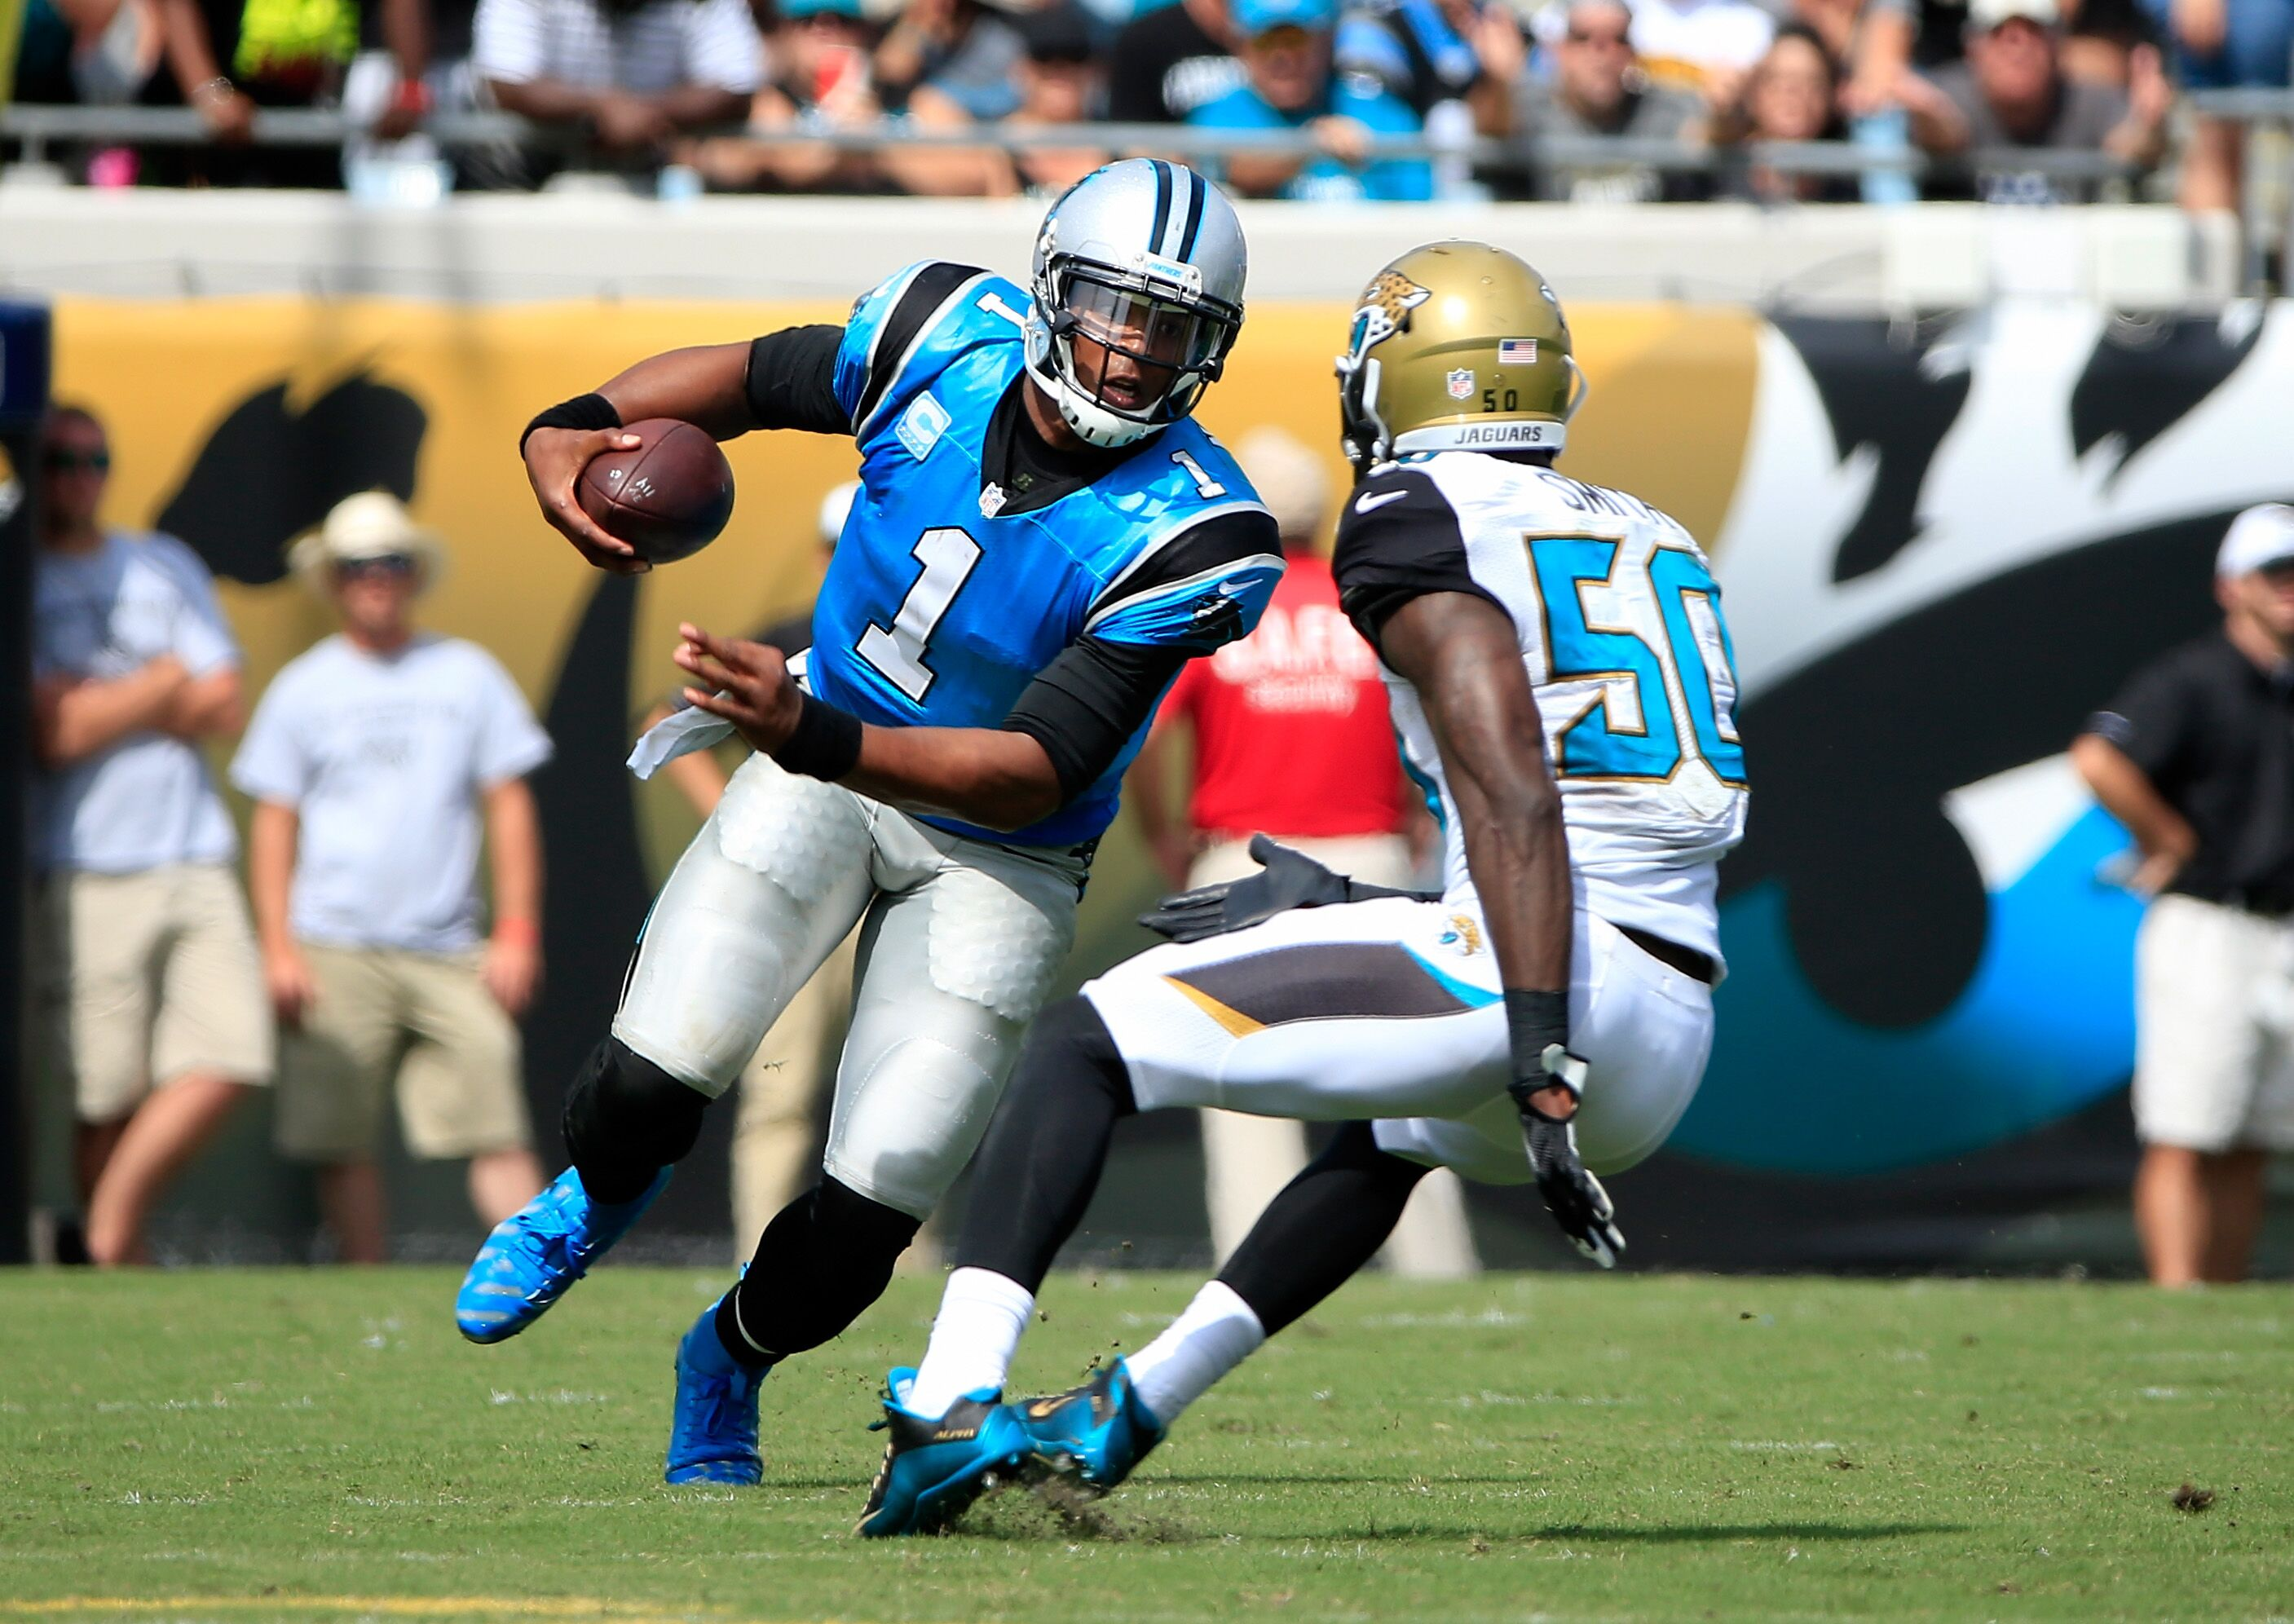 Jaguars Vs Panthers Preview Tv Coverage And Streams